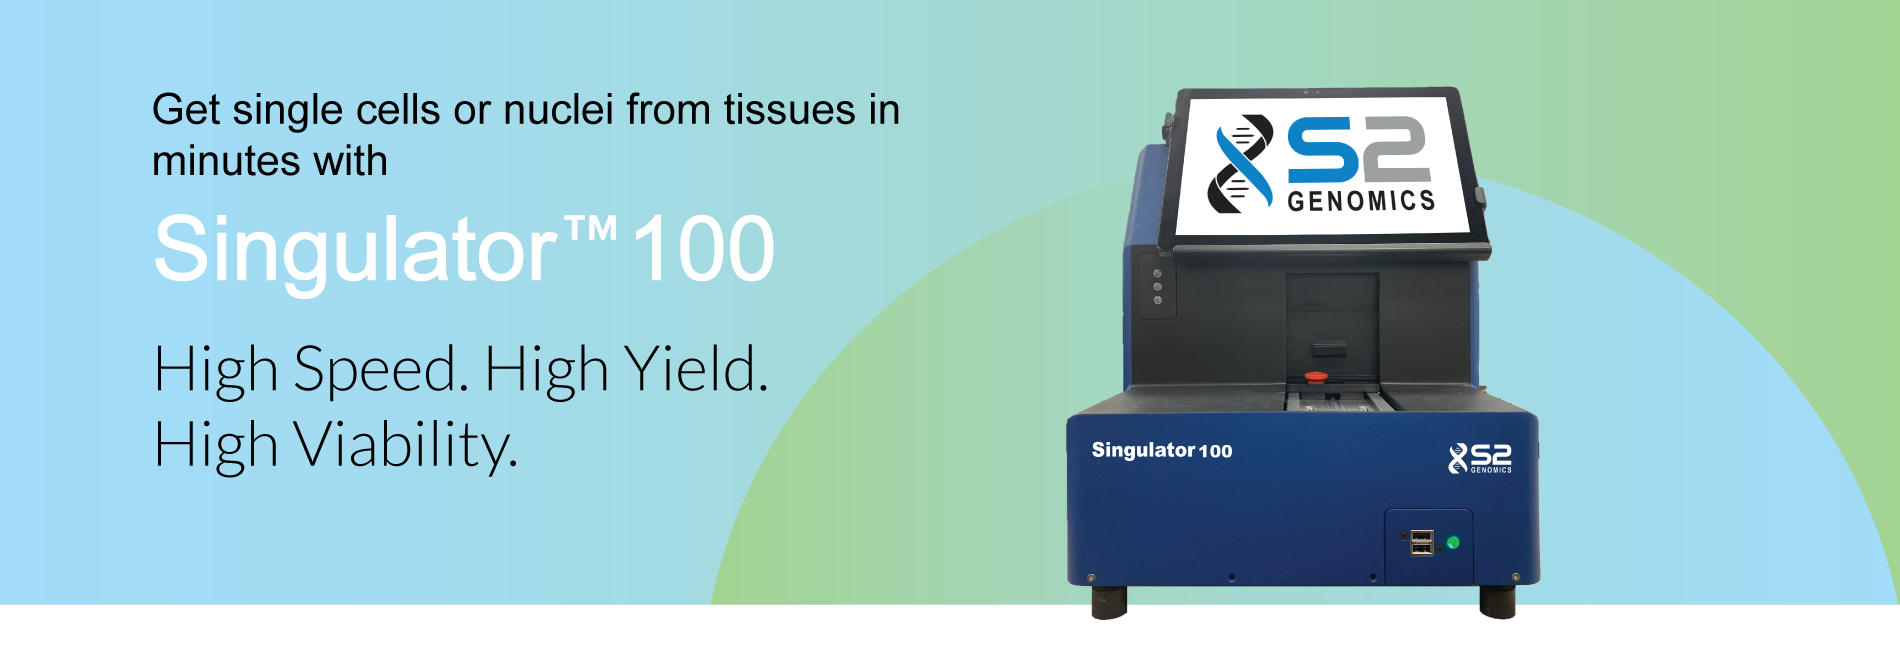 Singulator-100-S2-Genomics-Automated-Tissuel-Prep-System-for-Single-Cell-Analyses